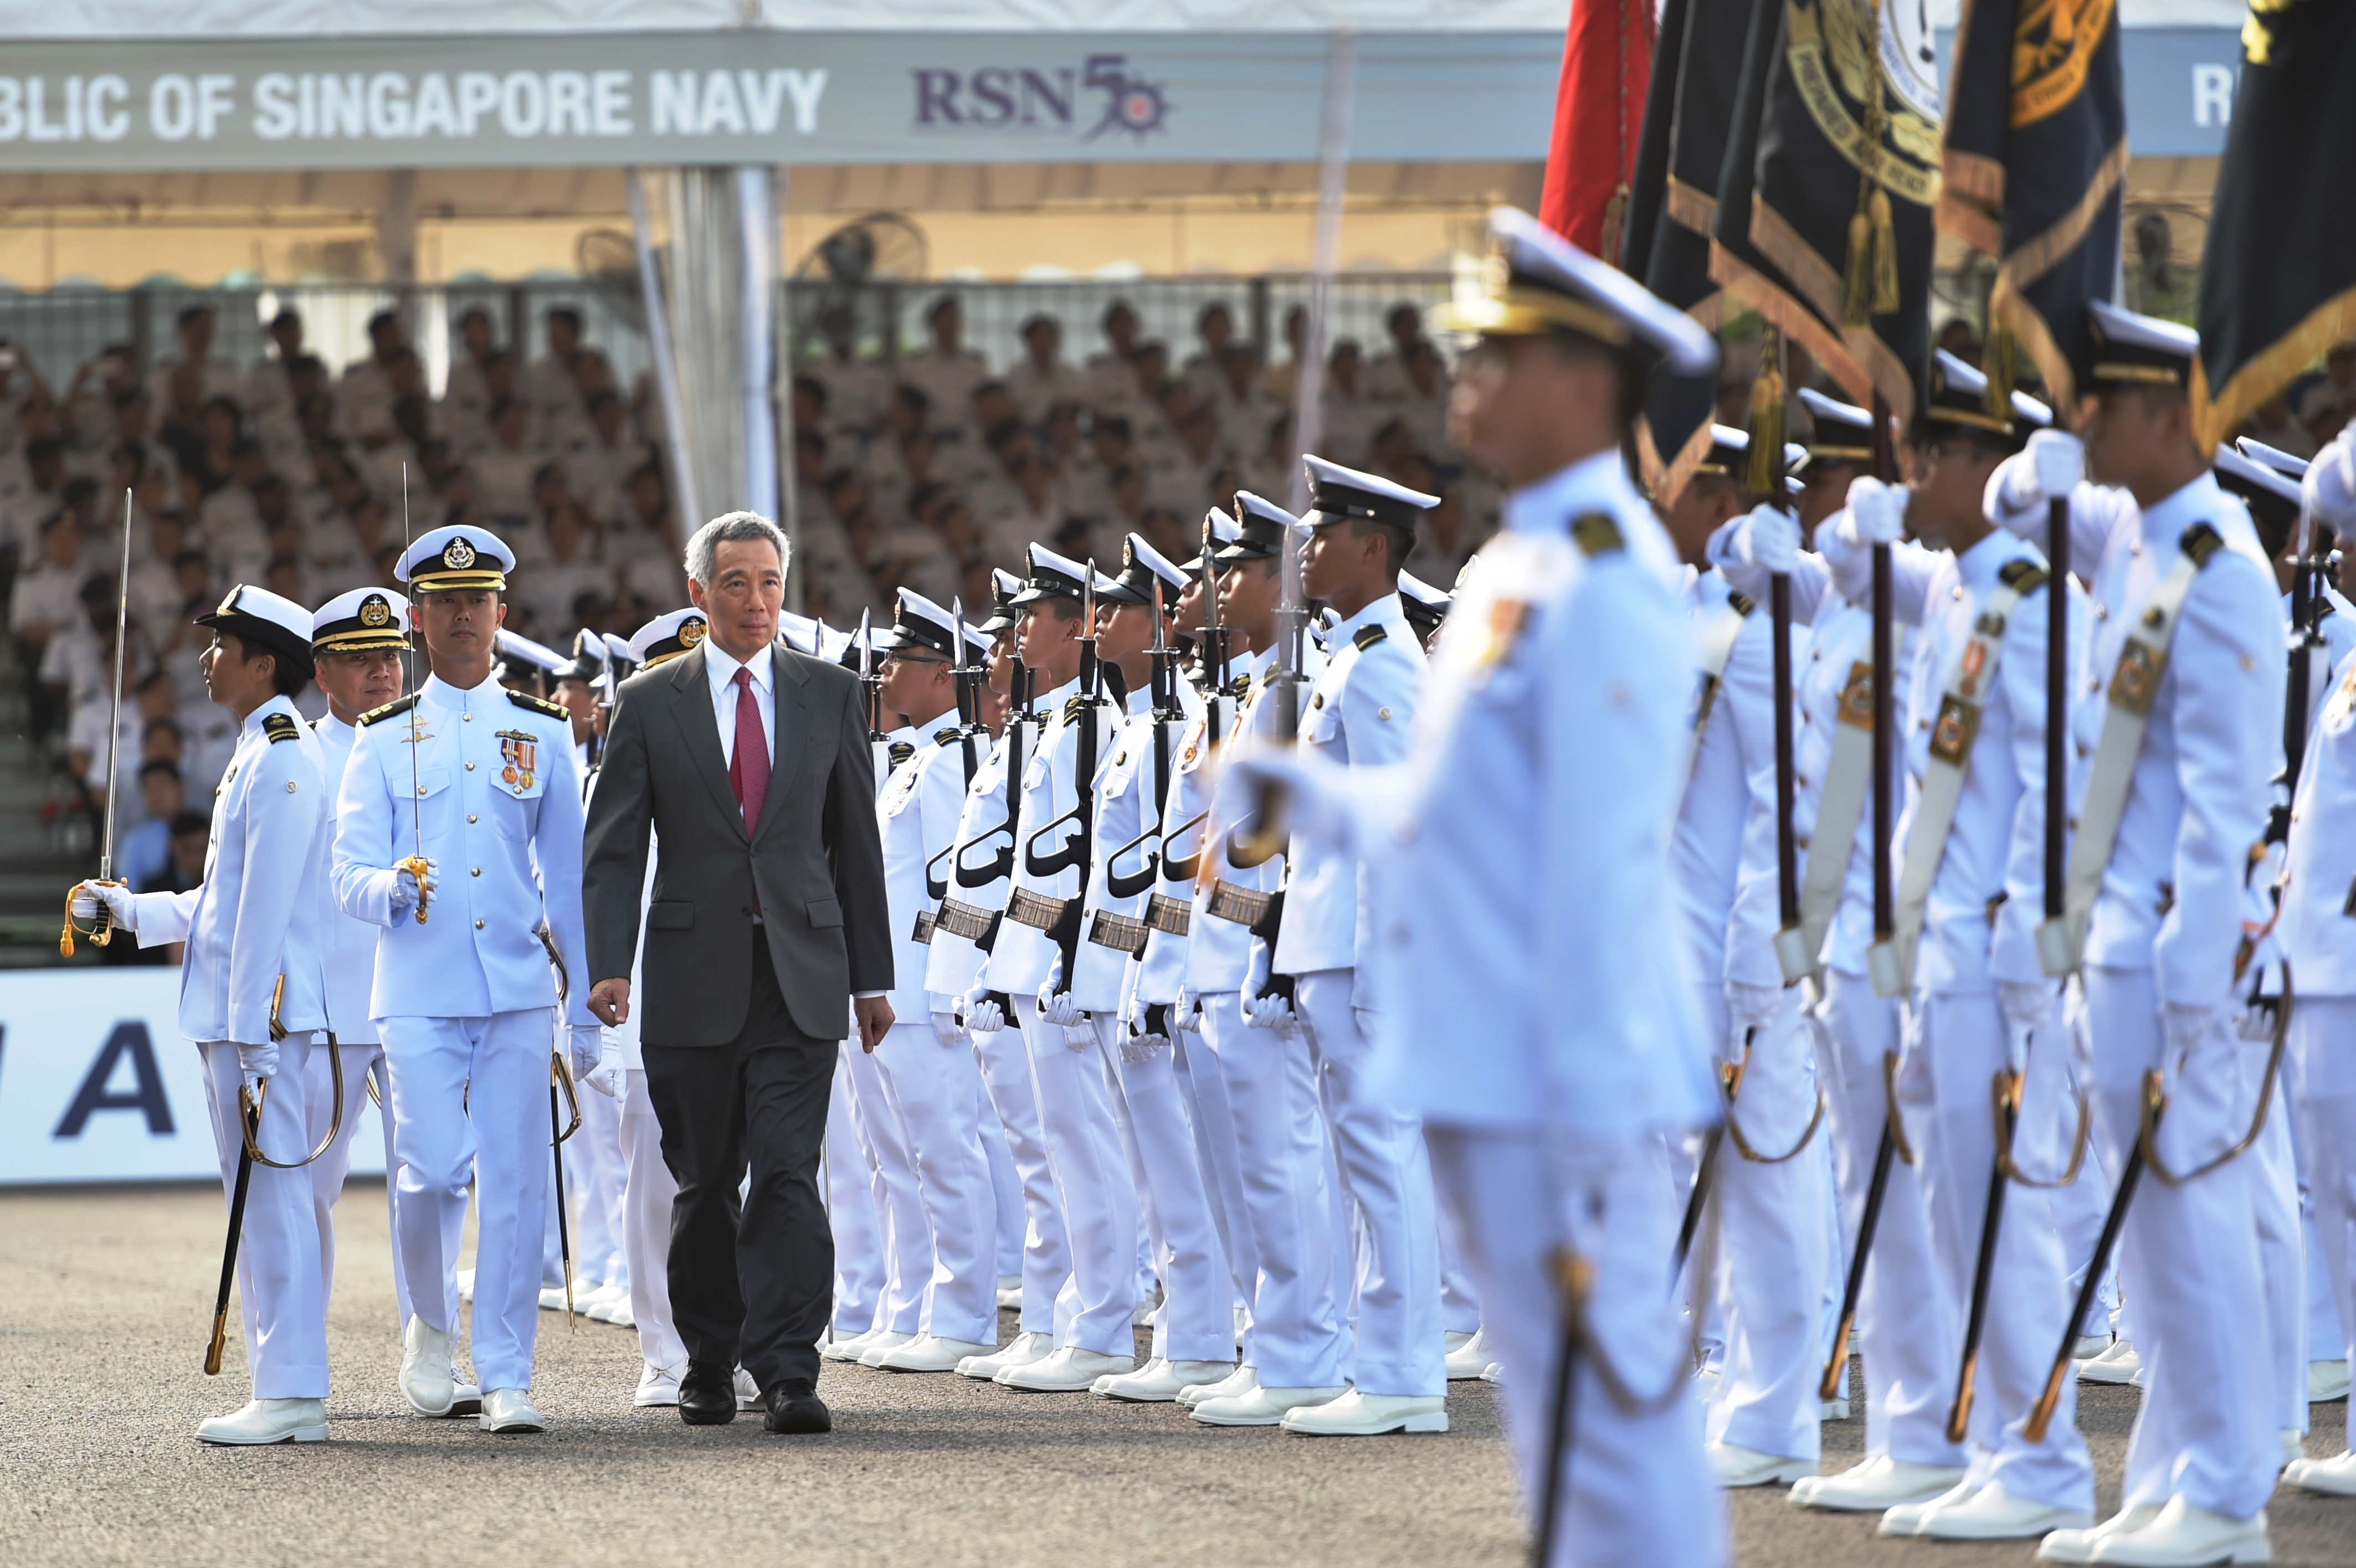 Lee Hsien Loong, Prime Minister of Singapore,  inspecting the Guard of Honour at the Republic of Singapore Navy (RSN)'s Golden Jubilee celebrations and commissioning of first Littoral Mission Vessel RSS Independence held at Changi Naval Base.